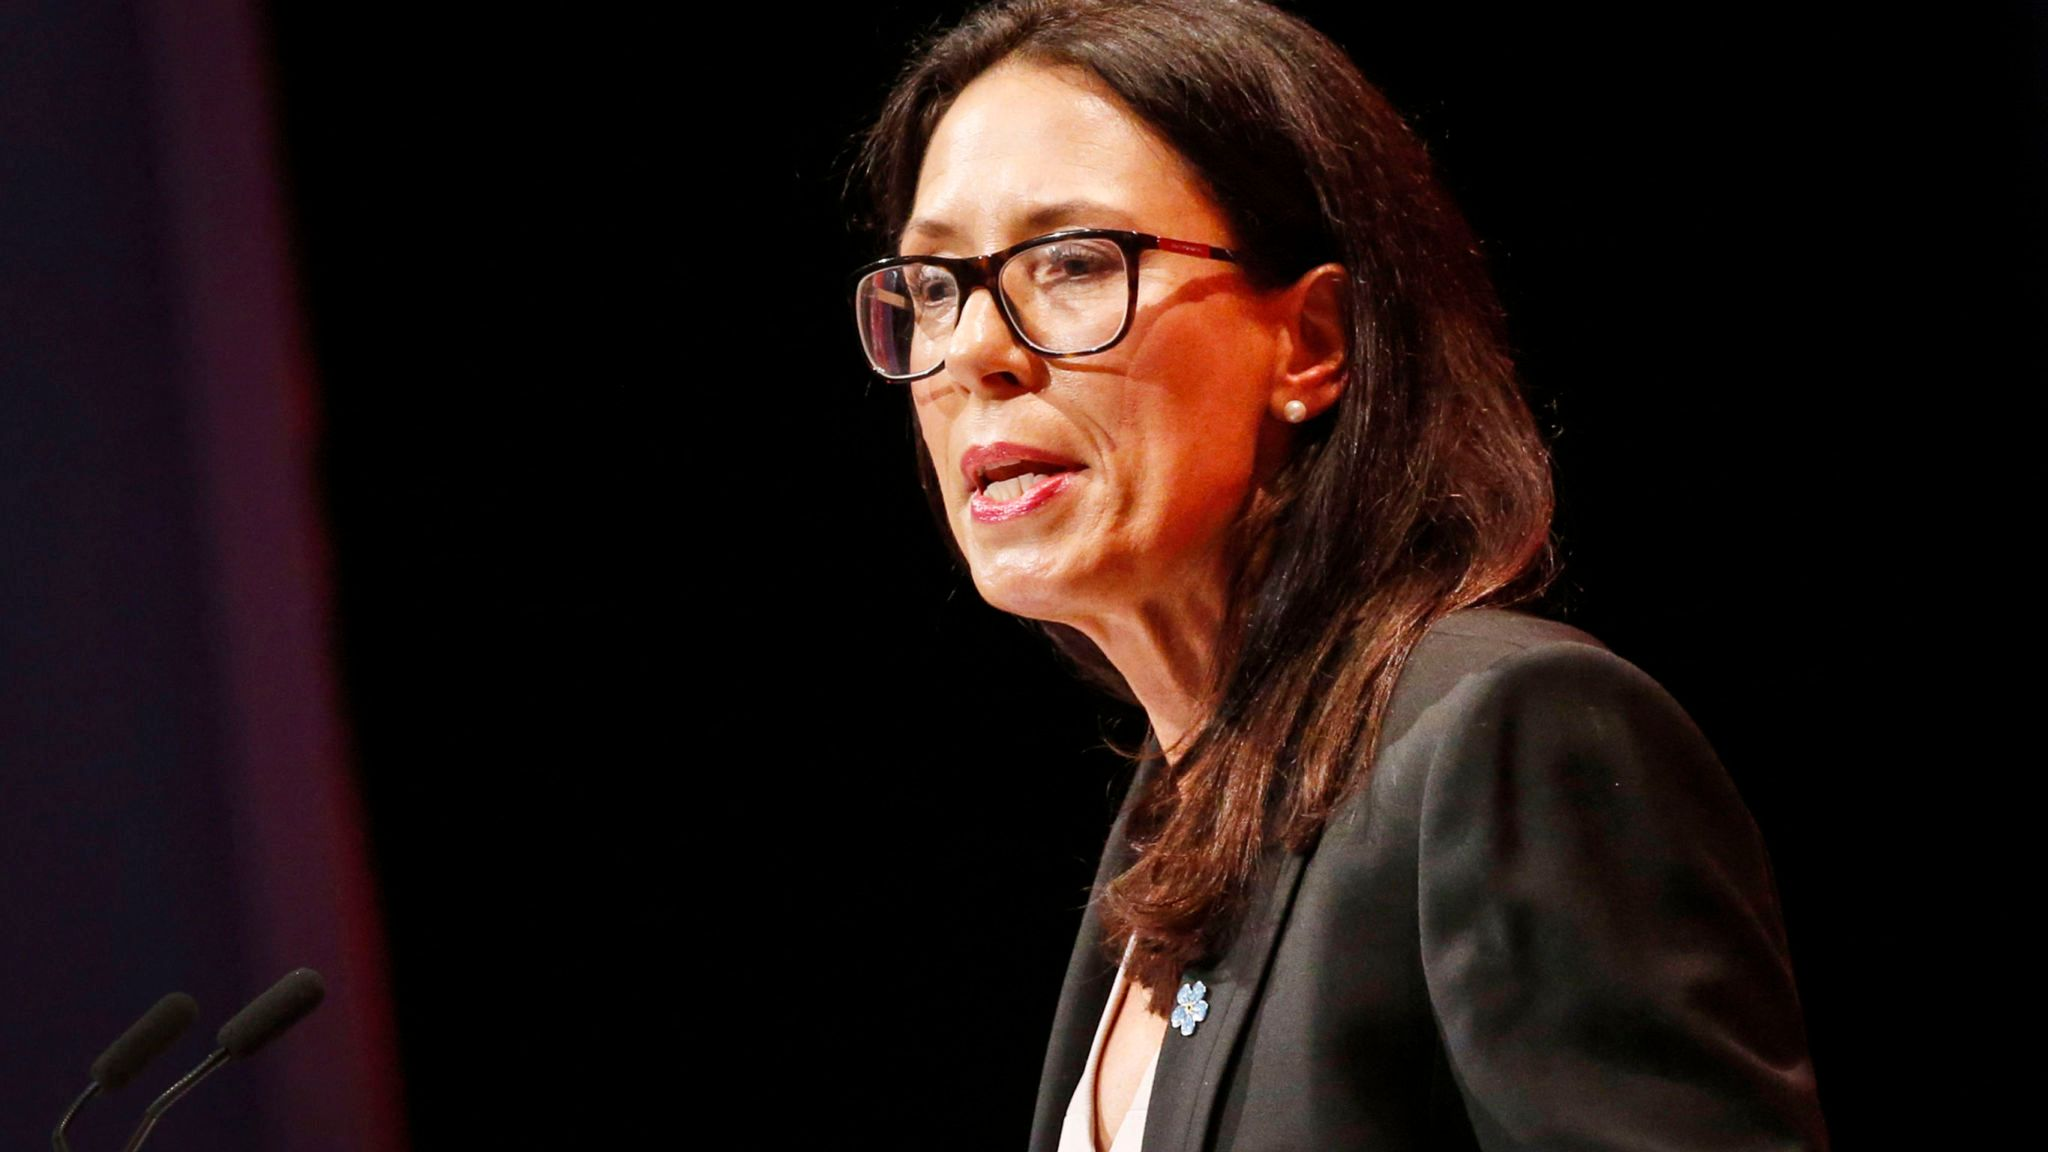 Labour politician Debbie Abrahams